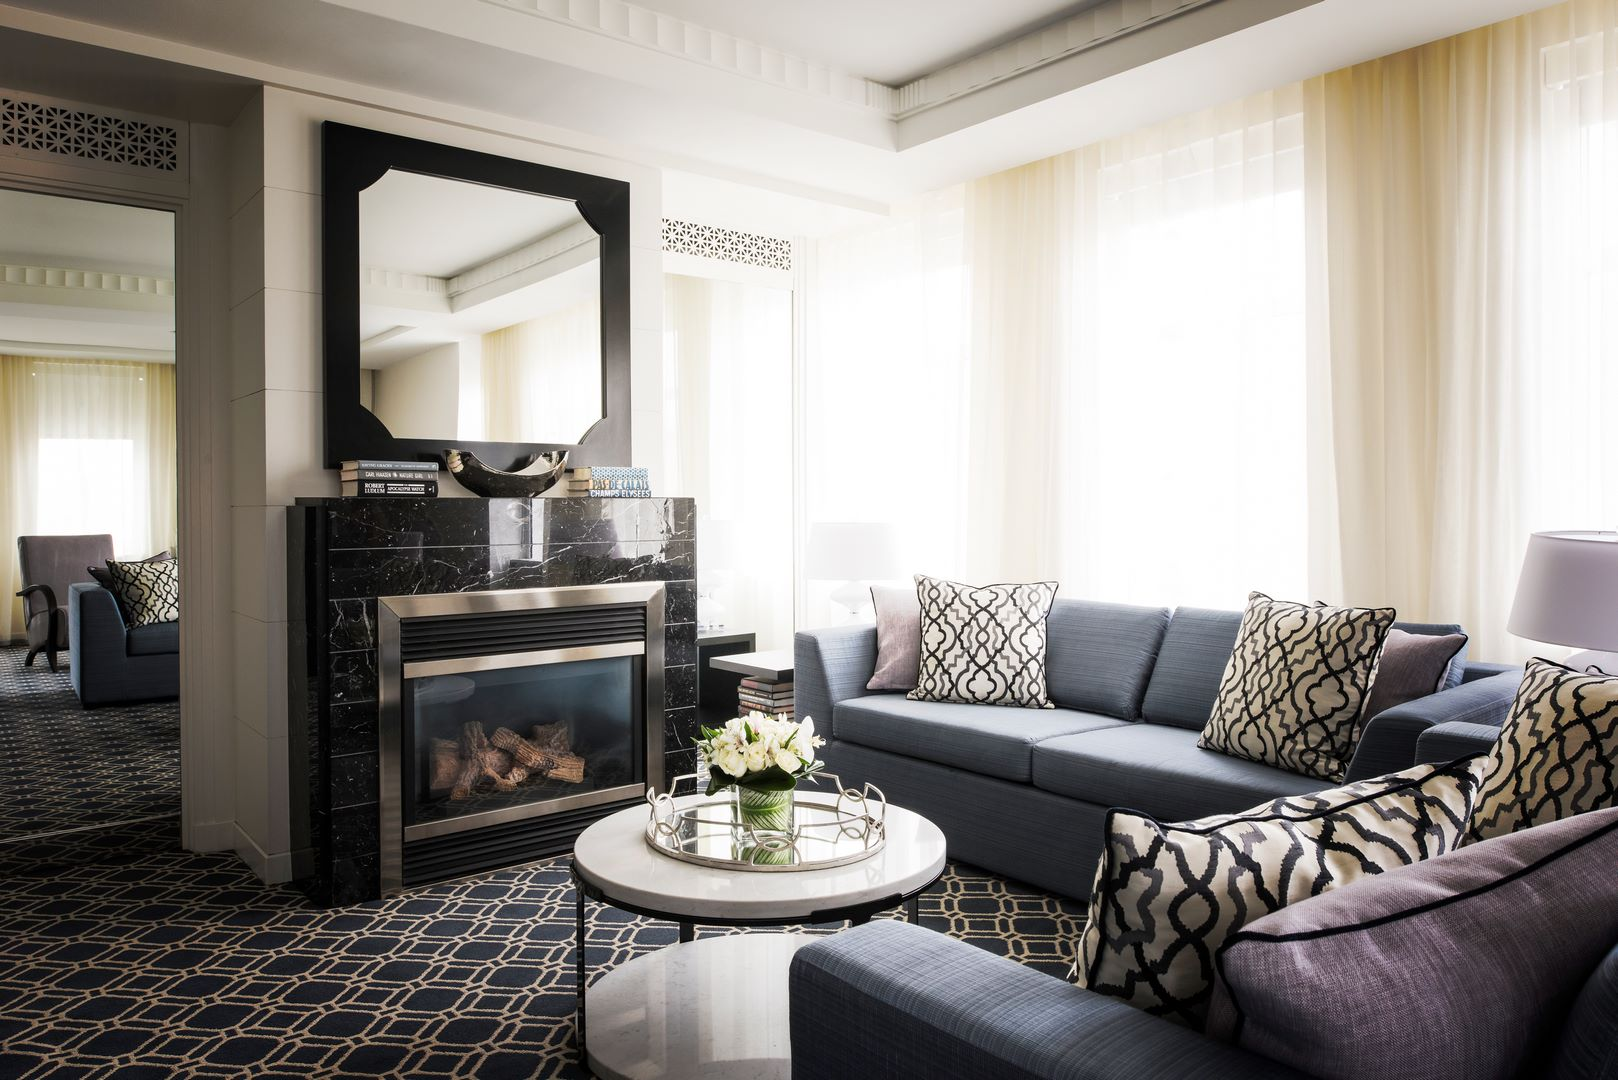 Sofitel washington dc lafayette square presidential suite for 2 bedroom suite hotels washington dc